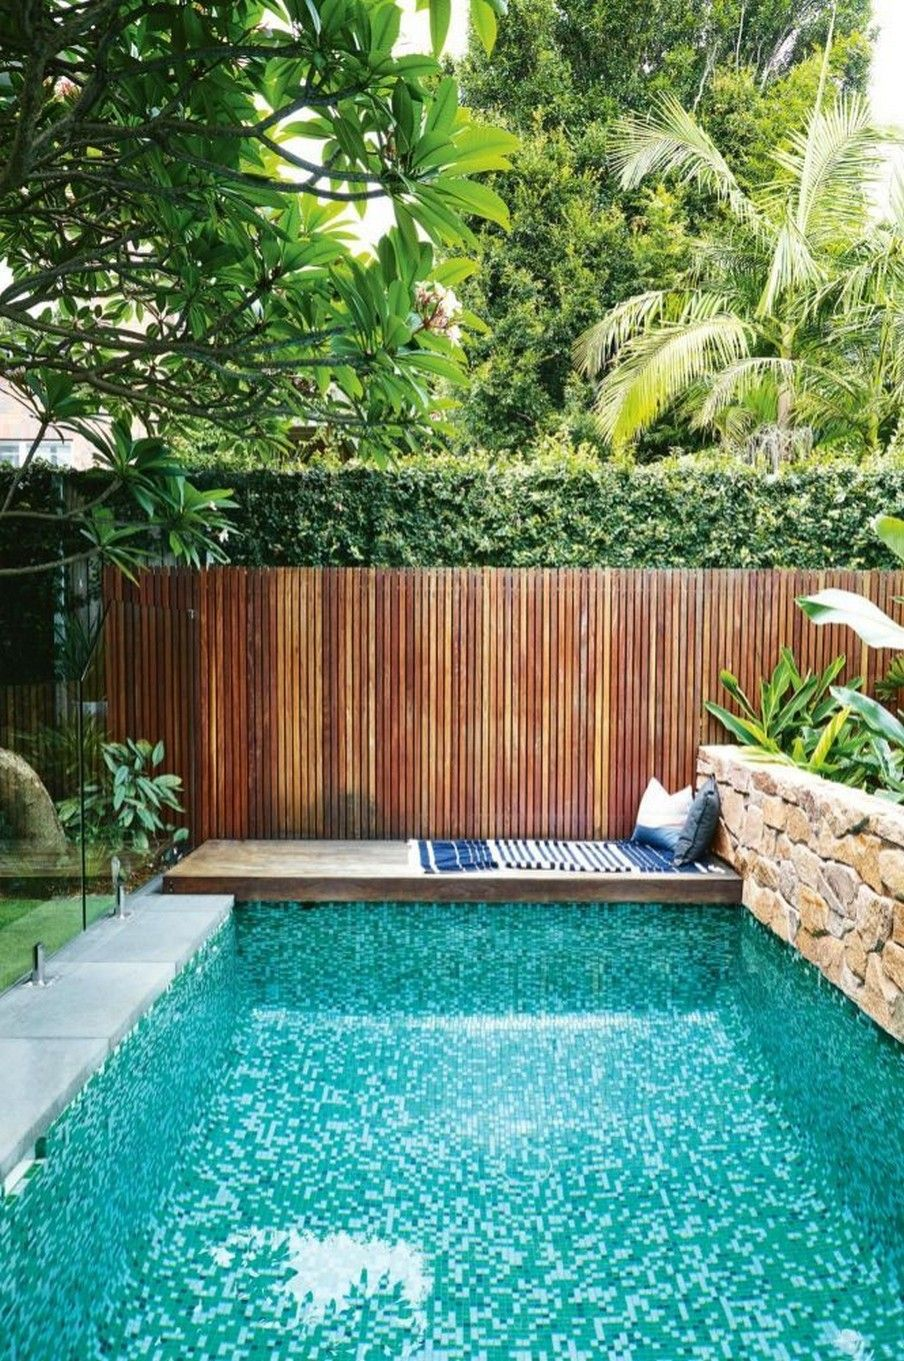 56 Incredible Small Indoor Pool Design Ideas In Your Home 14 Fieltro Net Swimming Pools Backyard Backyard Pool Small Pool Design